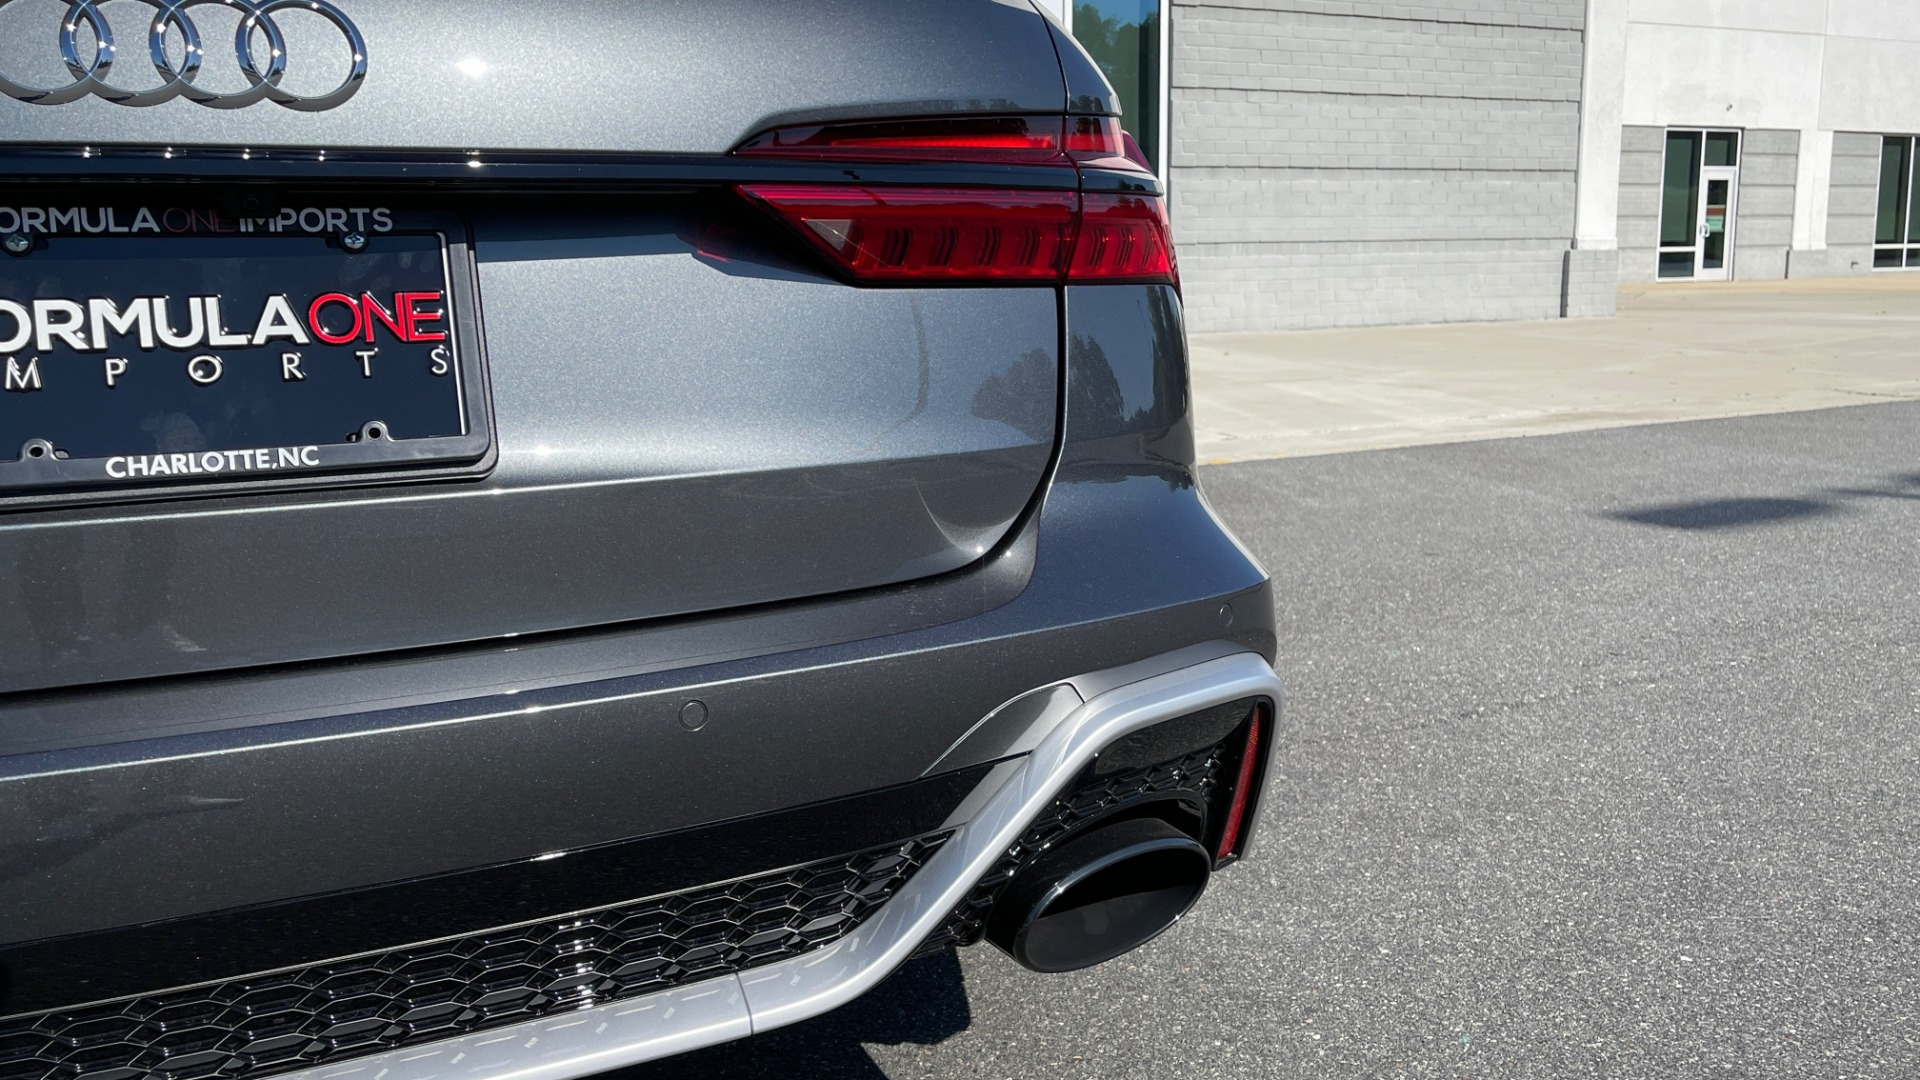 Used 2021 Audi RS 6 AVANT WAGON / EXEC PKG / CARBON OPTIC / B&O SND / DRVR ASST / SPRT EXH for sale Sold at Formula Imports in Charlotte NC 28227 24